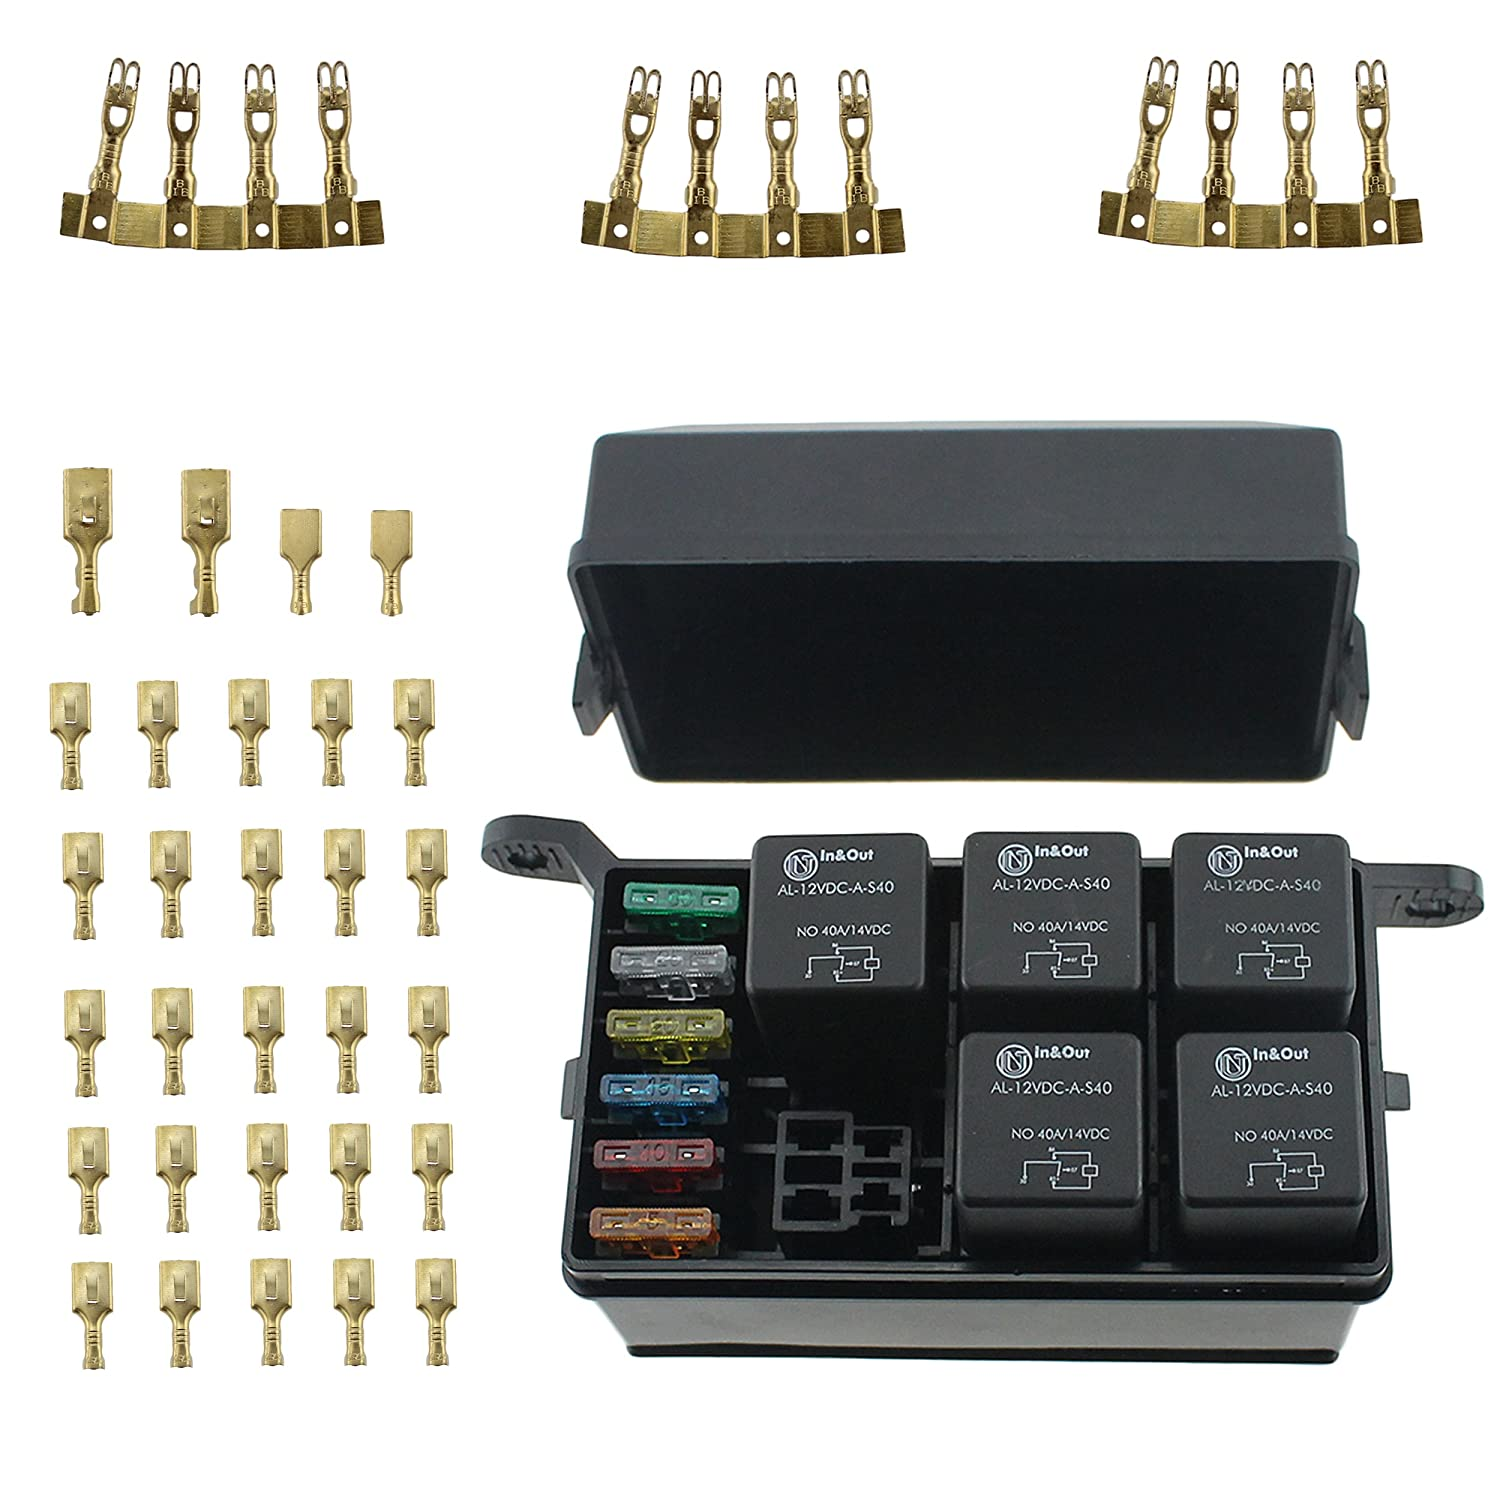 81Uj6Pmk1gL._SL1500_ amazon com fuse boxes fuses & accessories automotive  at creativeand.co